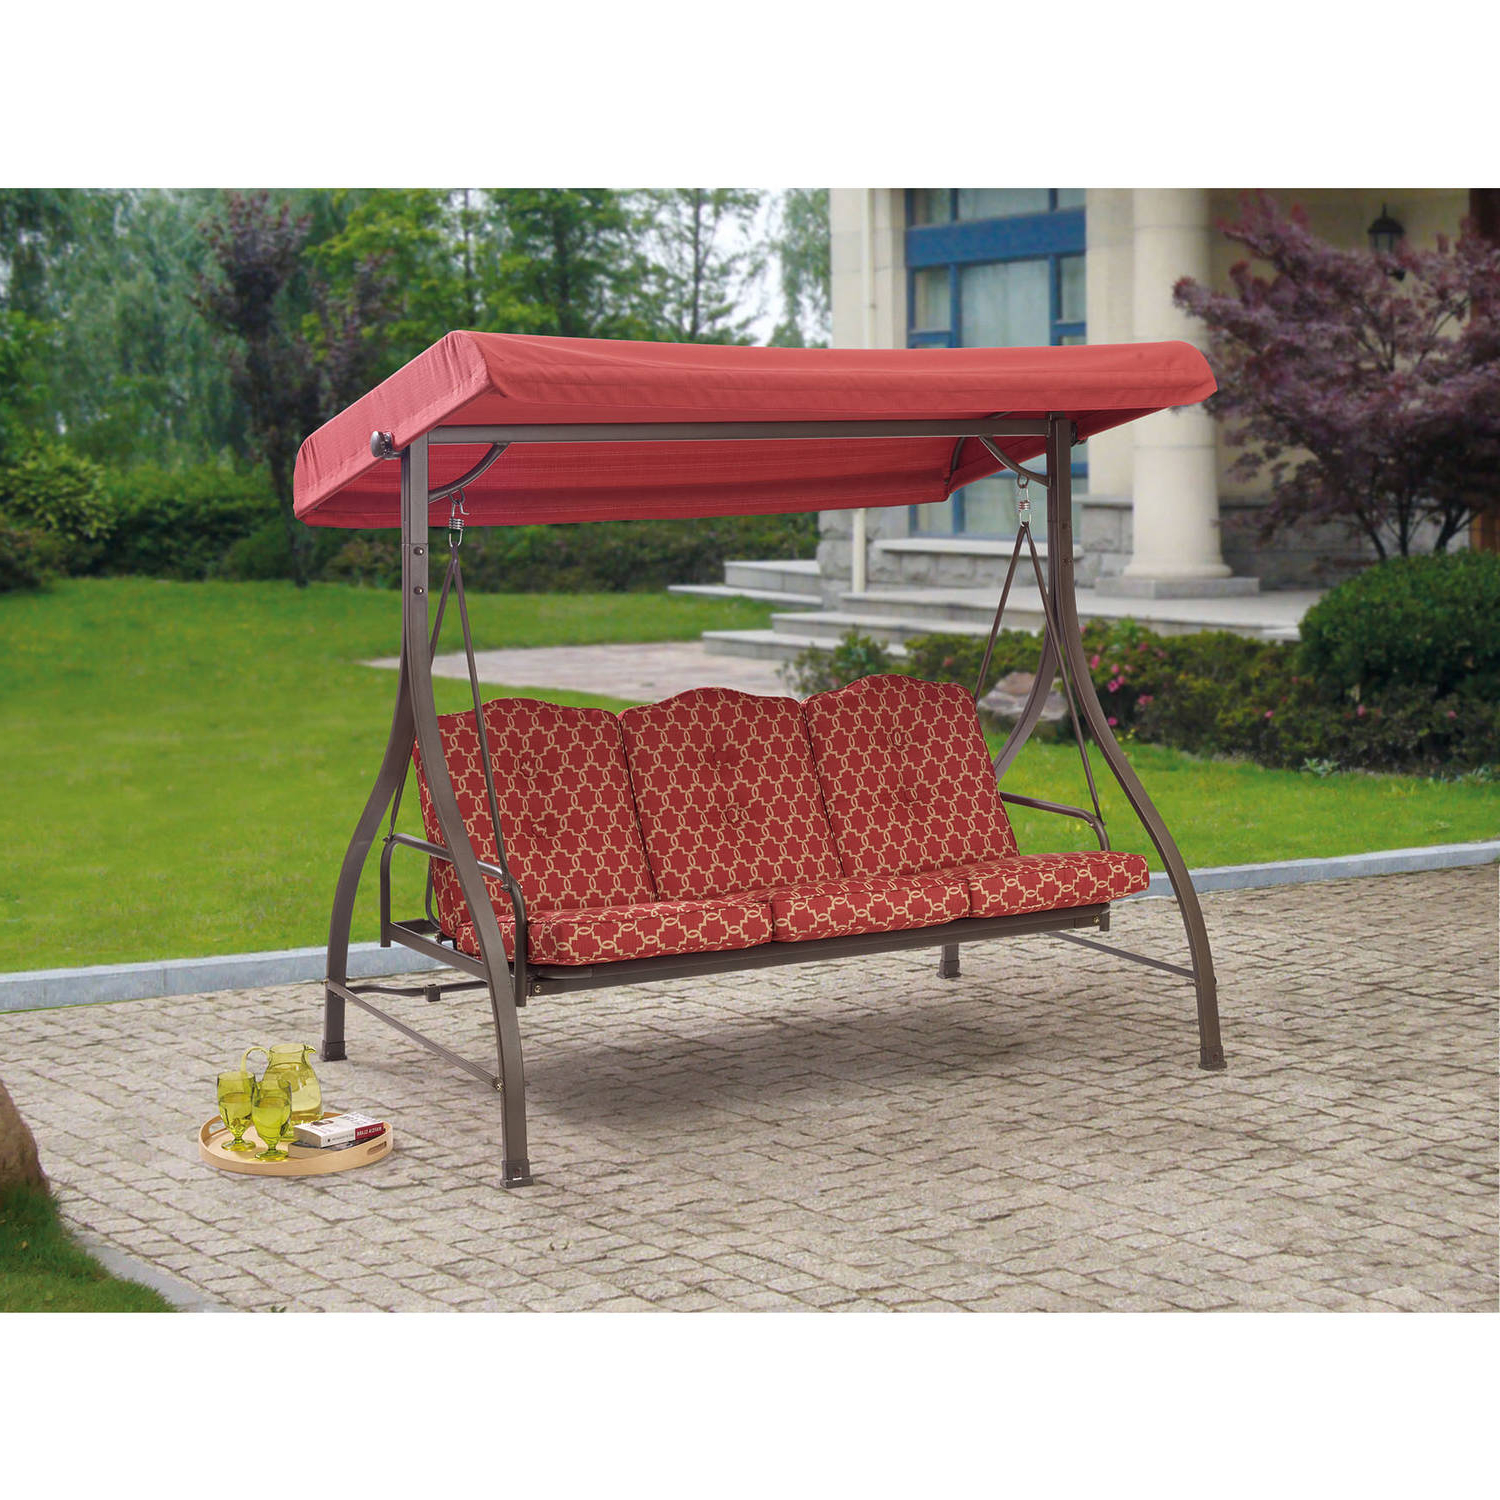 Most Current Outdoor: Cozy Outdoor Swing Cushions For Your Patio Intended For 3 Seats Patio Canopy Swing Gliders Hammock Cushioned Steel Frame (View 18 of 25)